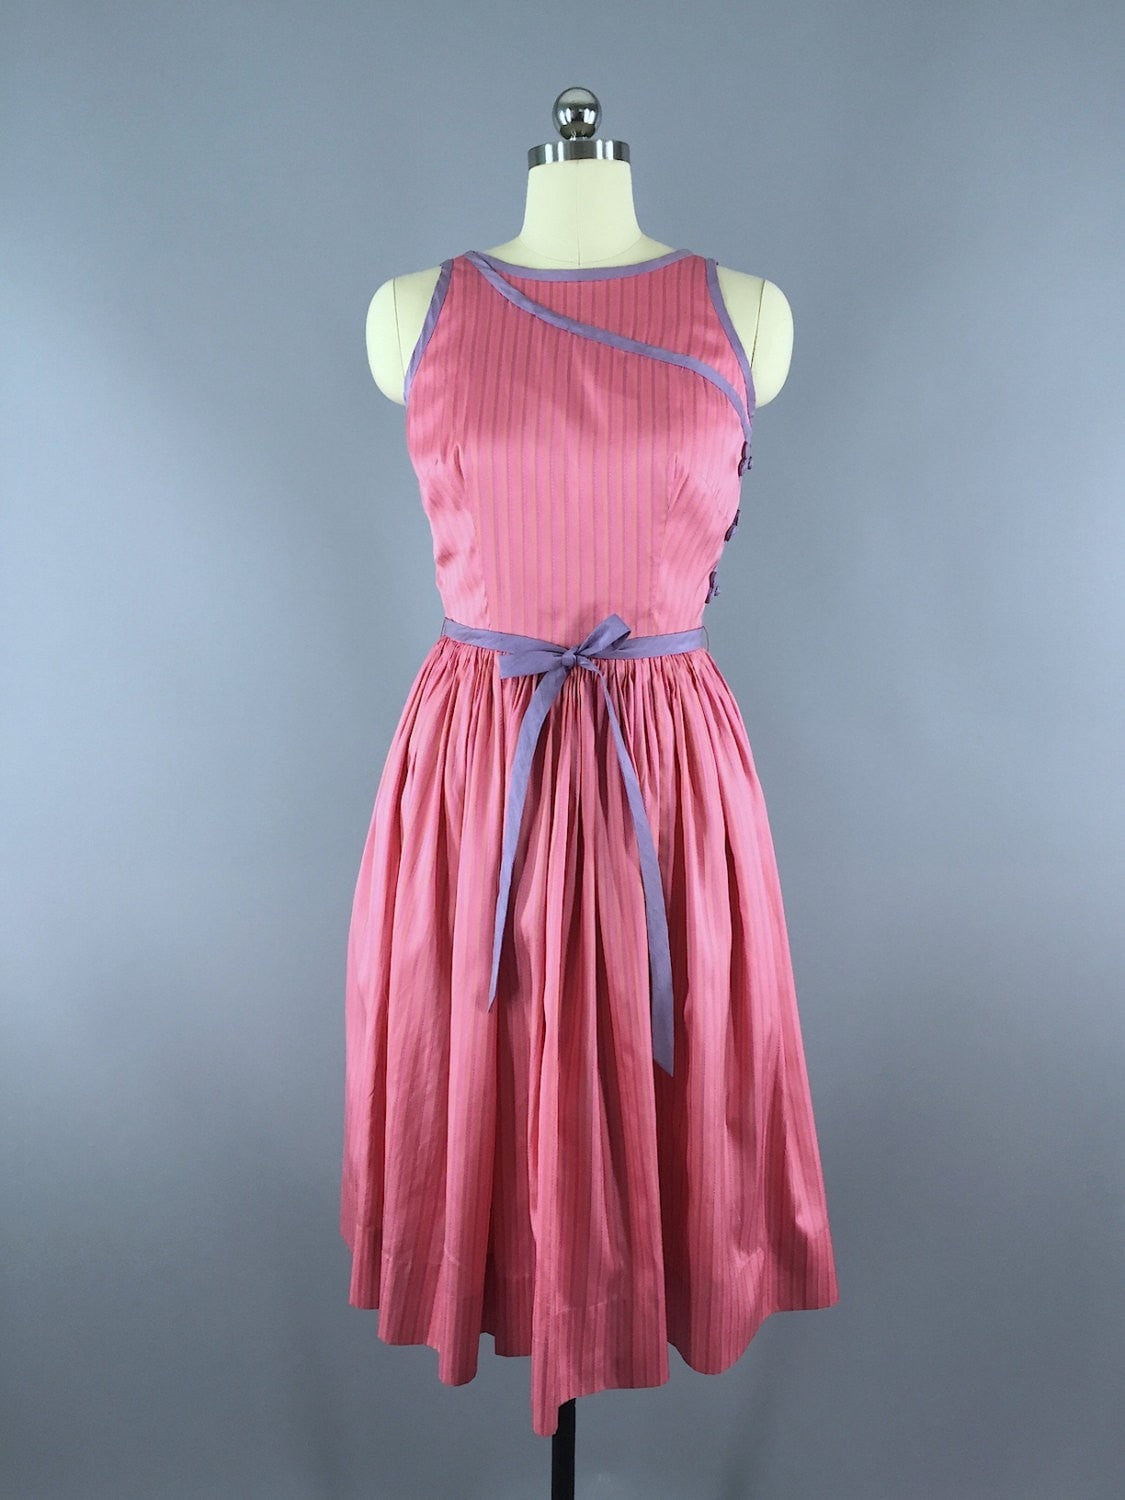 1960s Vintage Pink Silk Cocktail Dress Dress ThisBlueBird